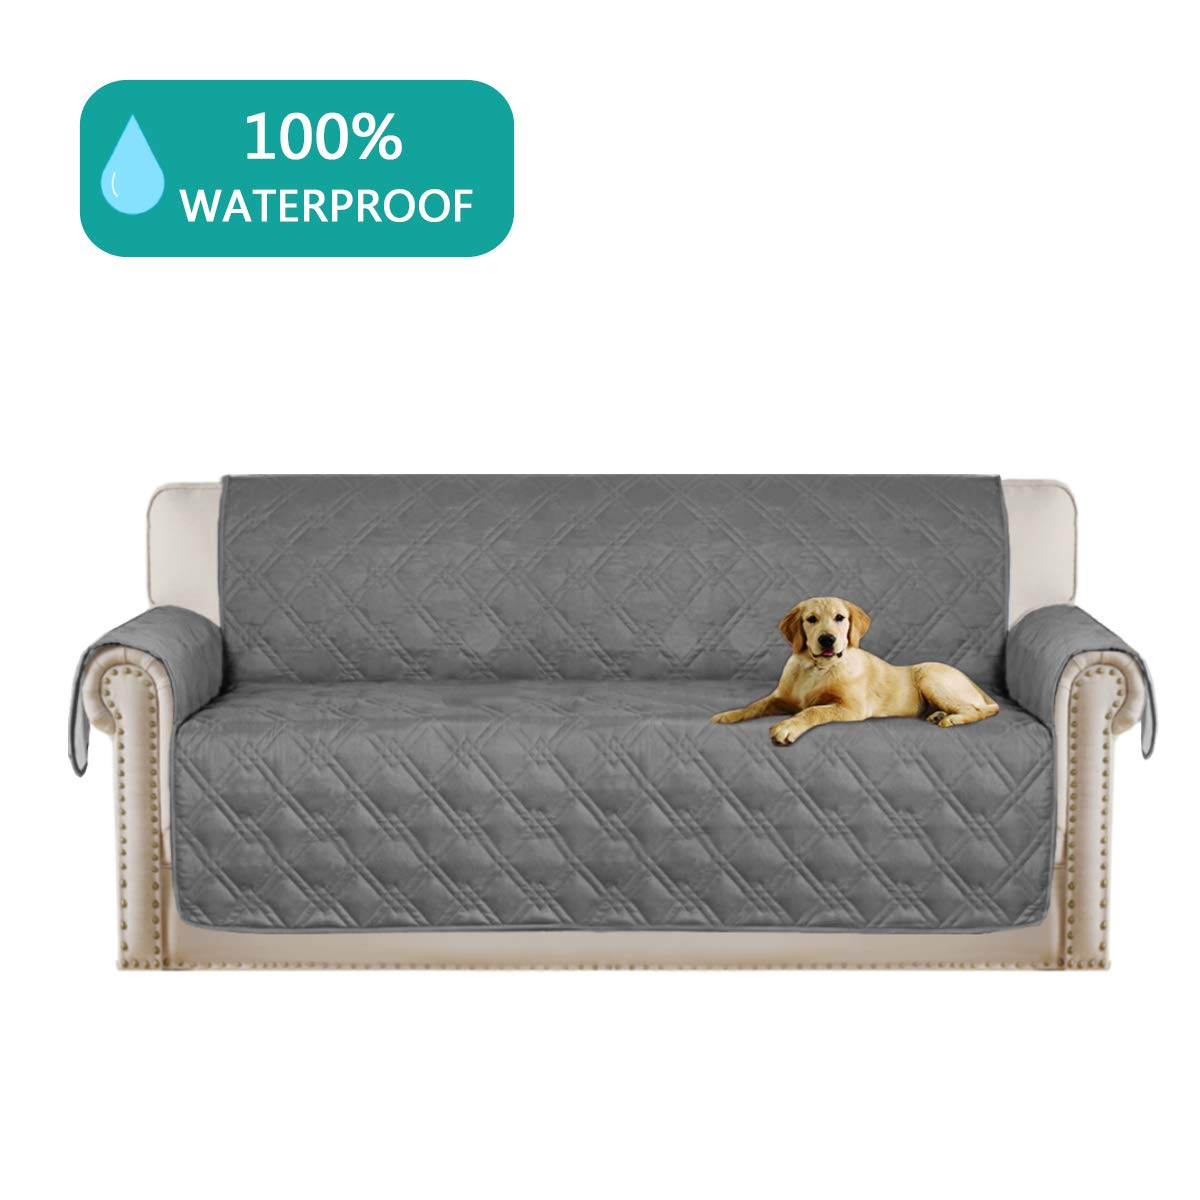 Turquoize 100% Waterproof Dog Couch Cover Quilted Sofa Slipcover Pet Couch Cover for Pets and Kids Furniture Protector with Back Nonslip Paws Machine Washable(Sofa 75x112) Grey